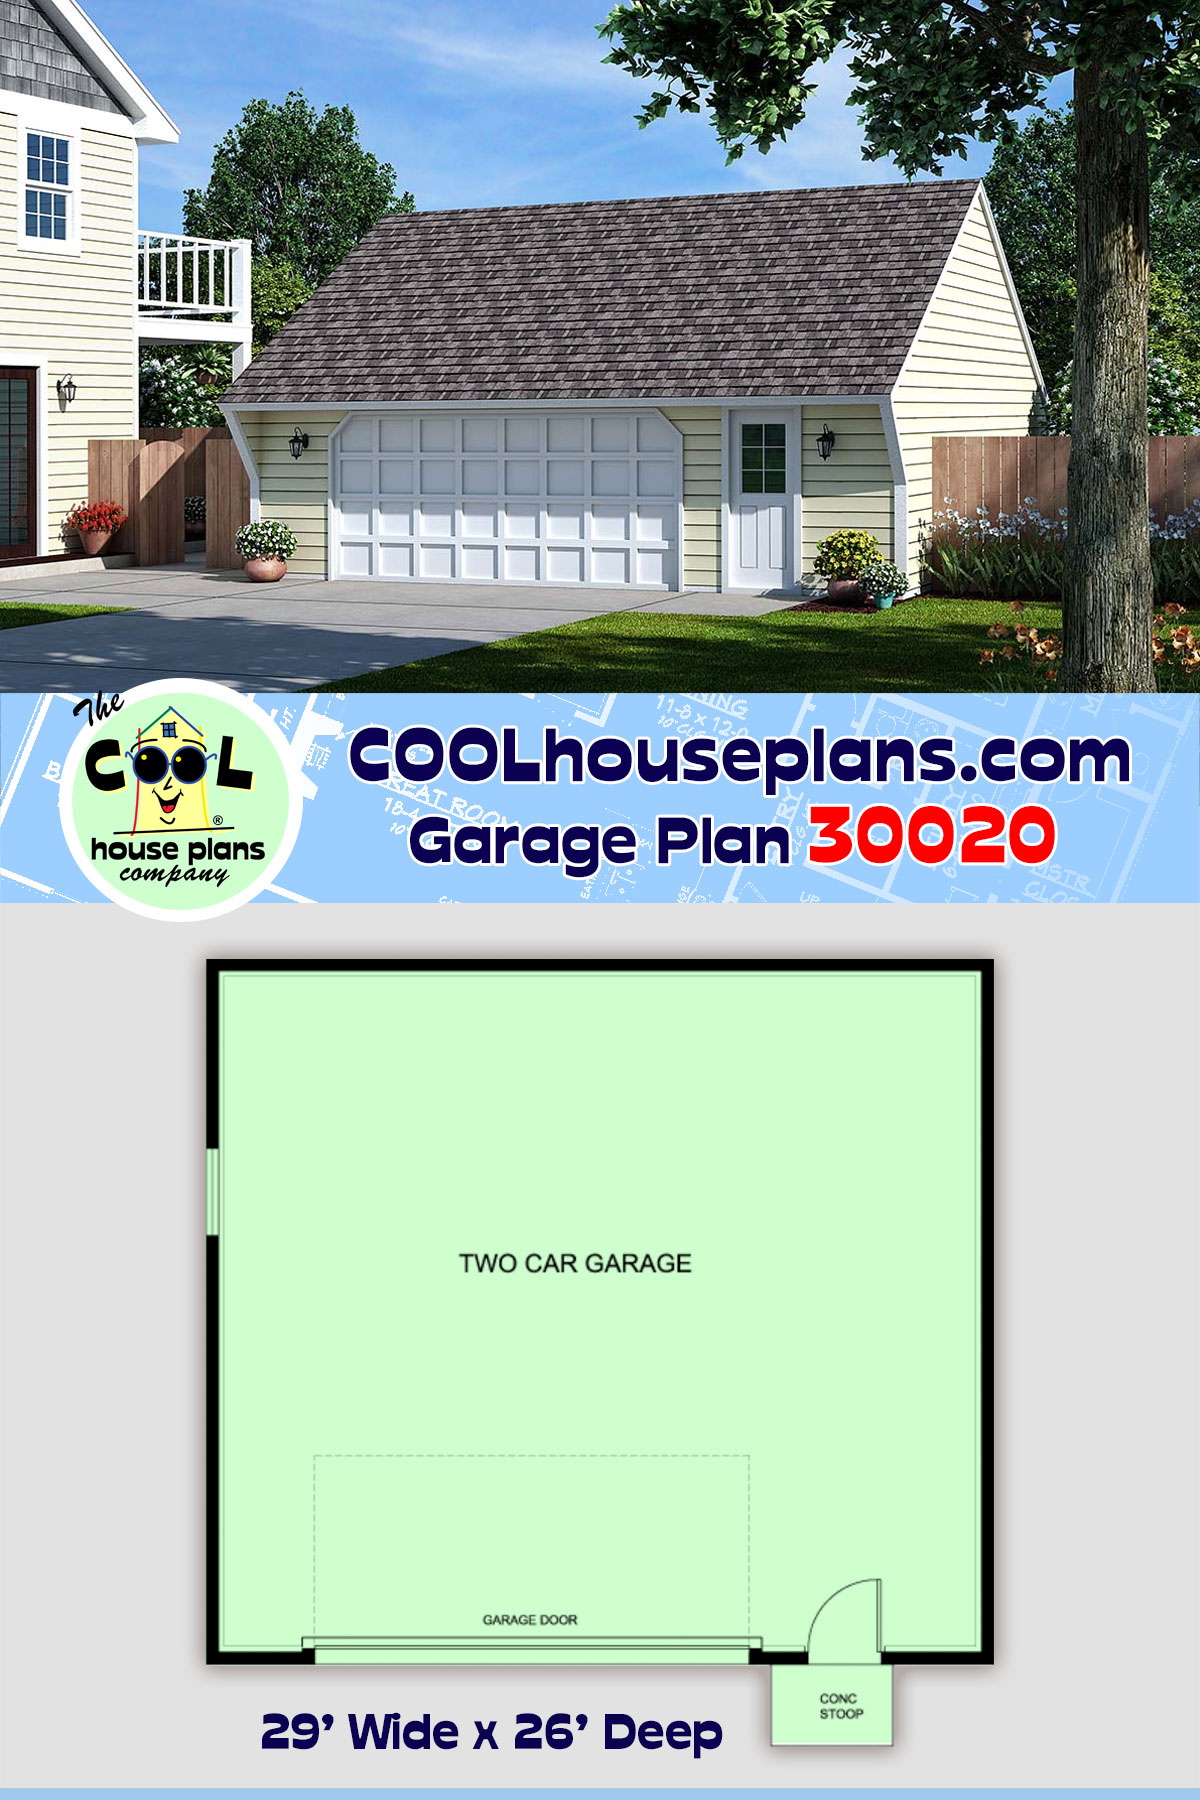 Cape Cod, Saltbox, Traditional 2 Car Garage Plan 30020